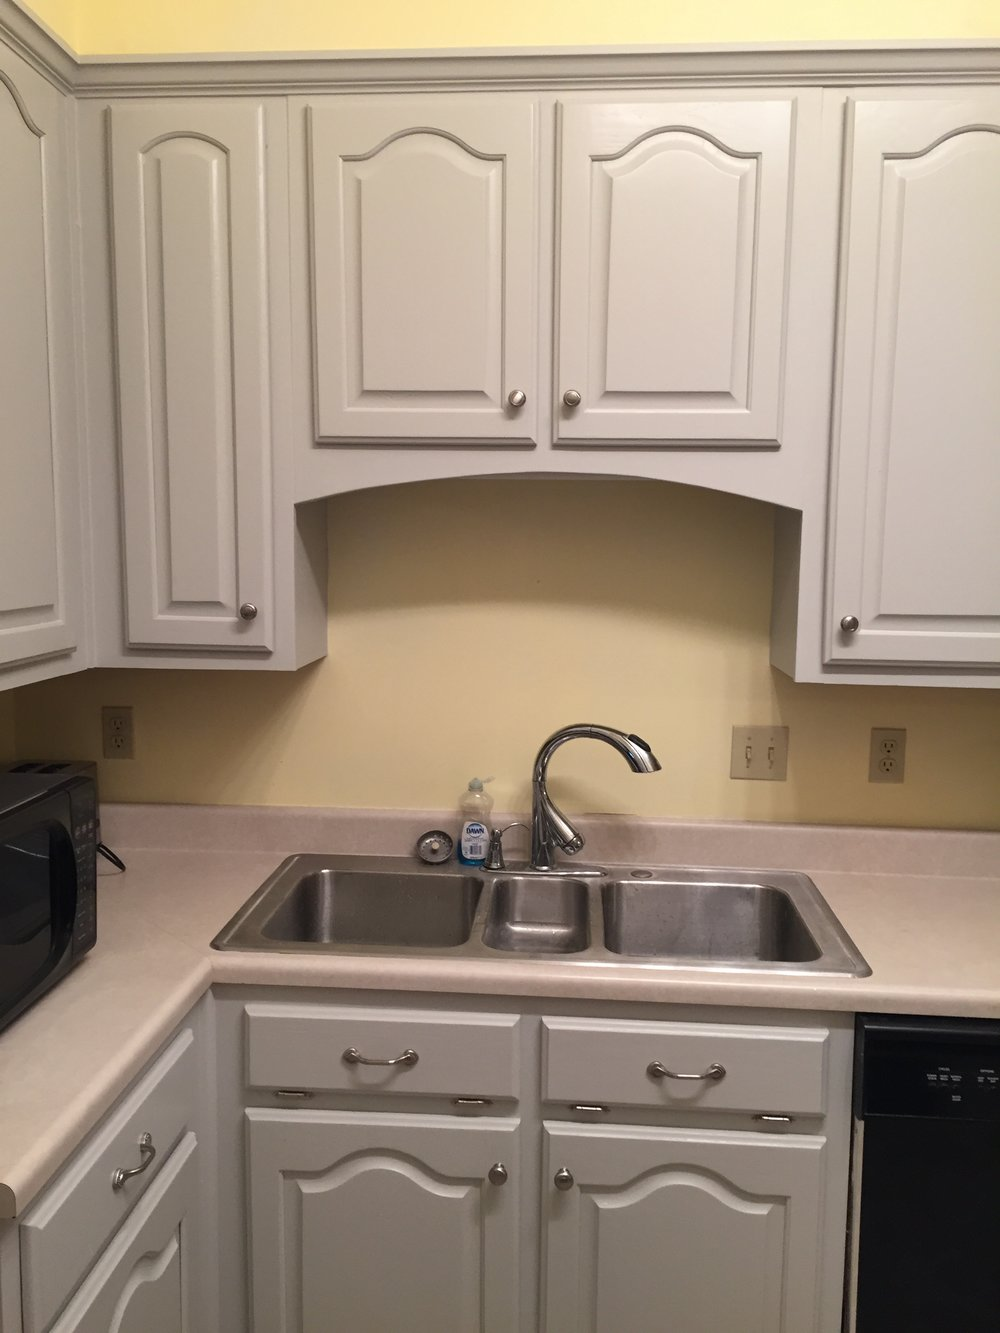 Though a subtle change, we also faired the curve of the valence panel above the sink.  It was sporting a country sampler circa 1989 look prior.